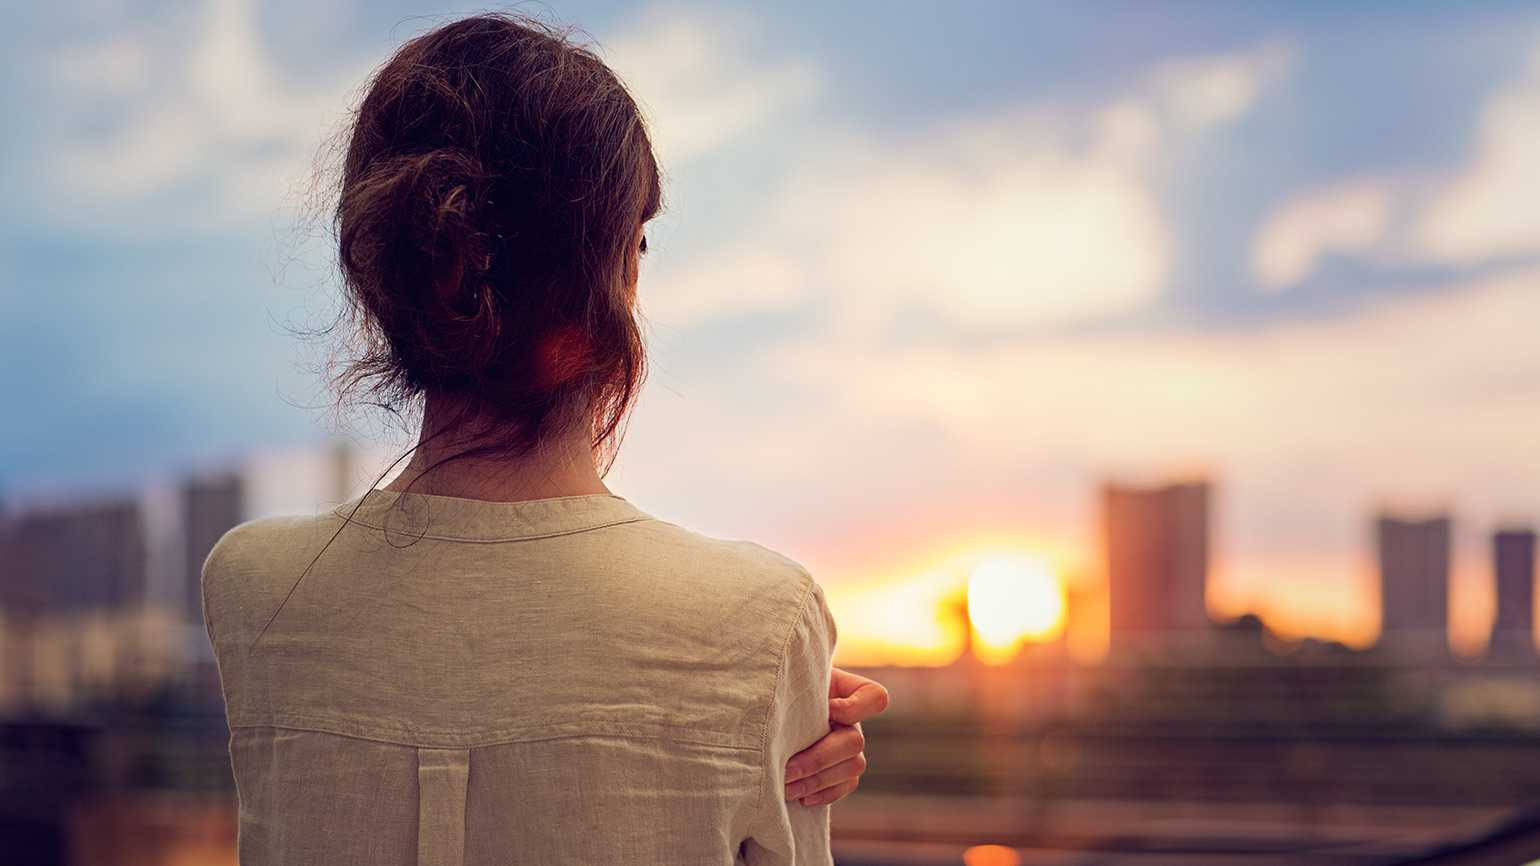 A woman gazes out over a city skyline at sunrise